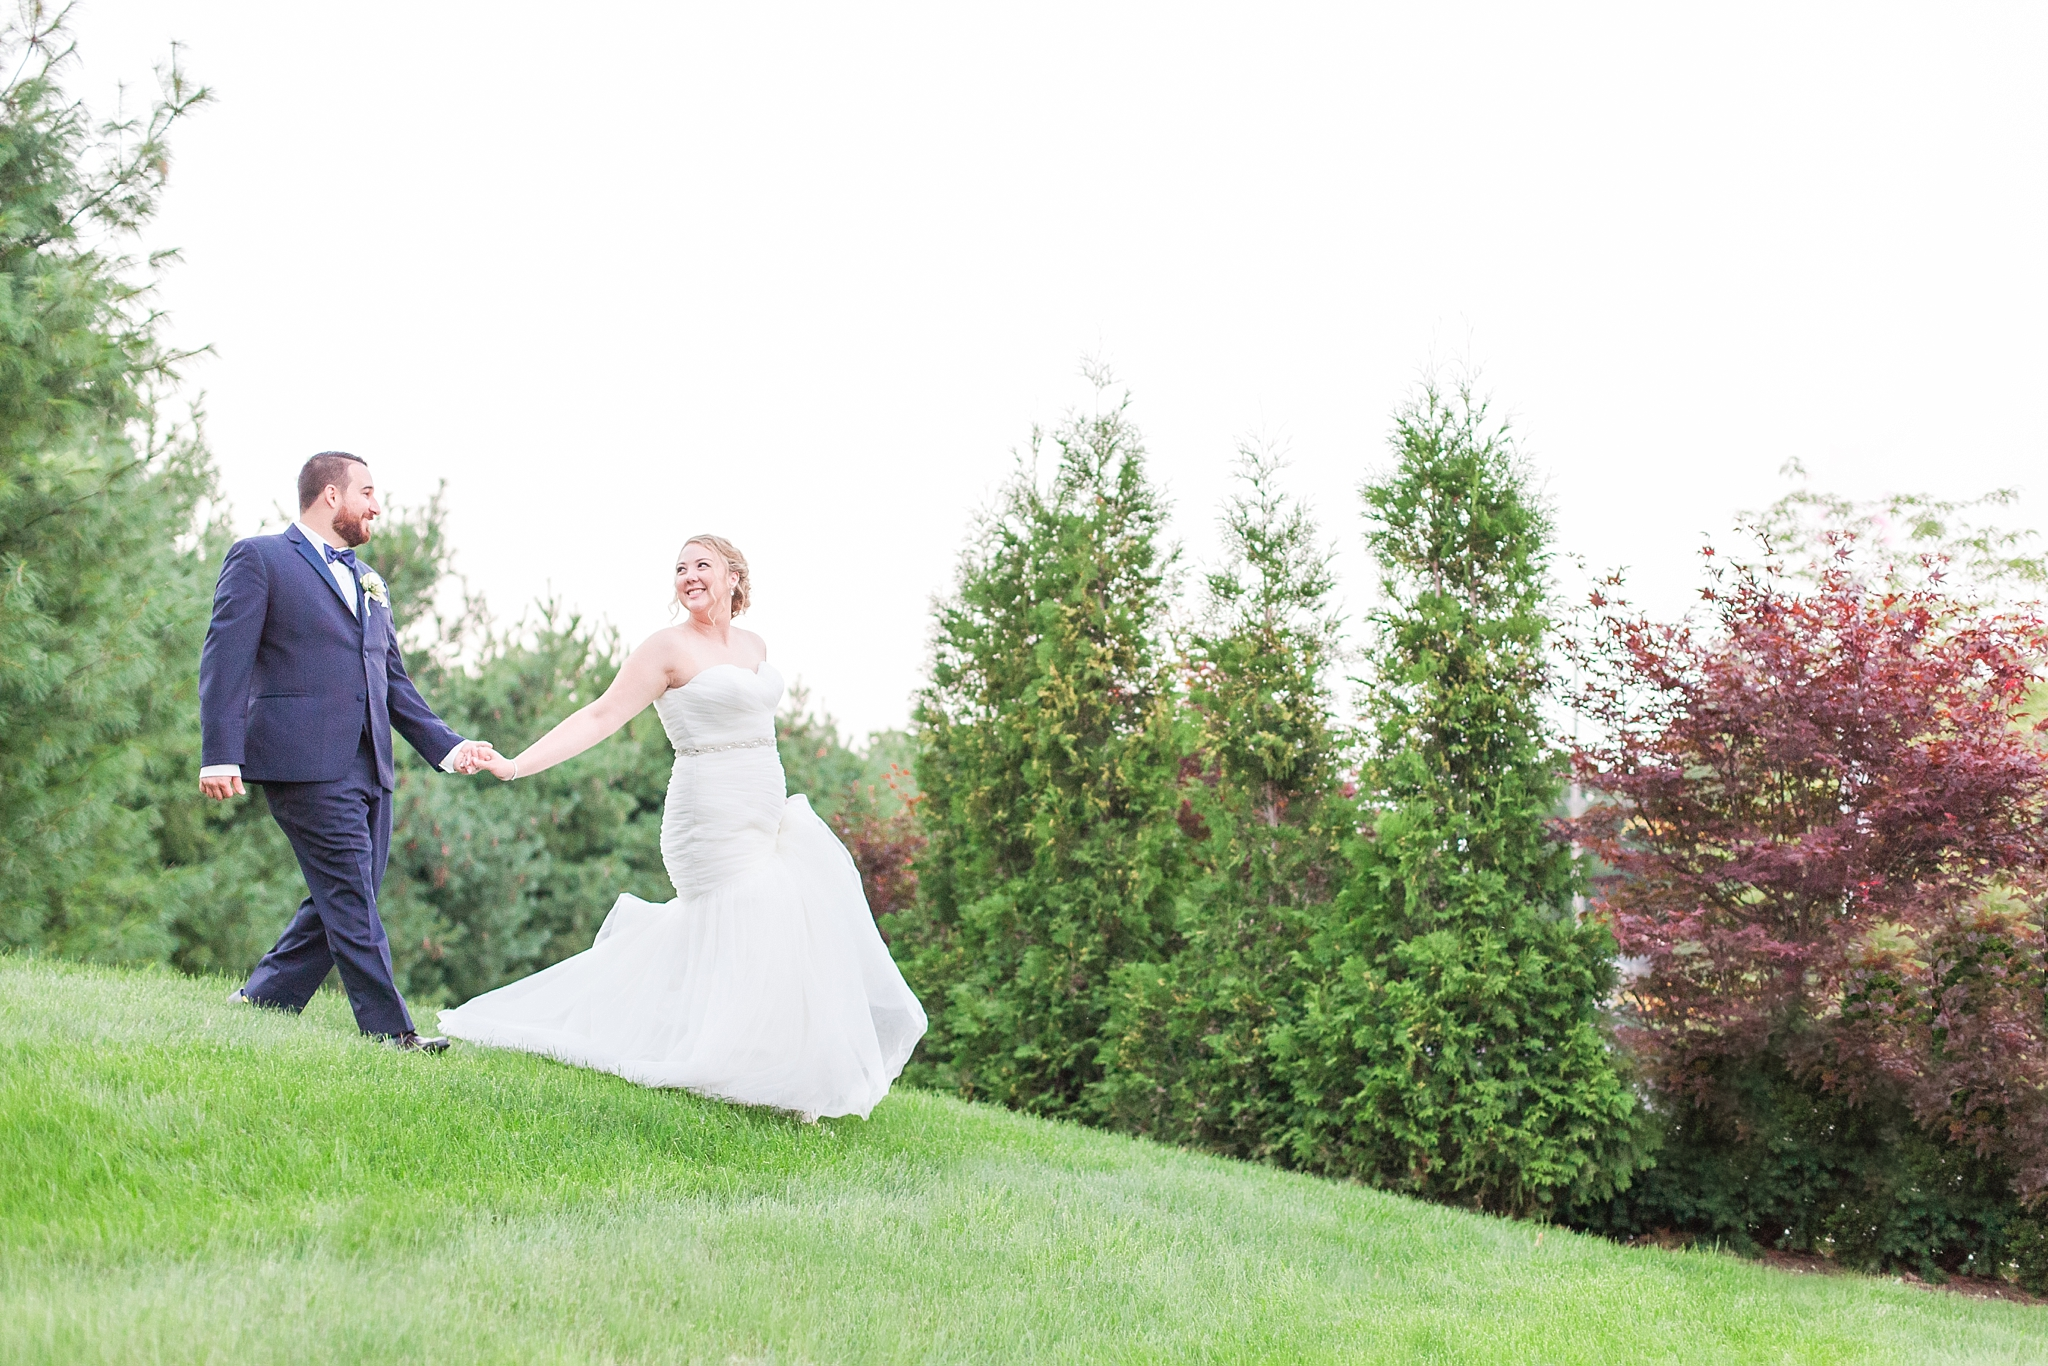 romantic-artful-candid-wedding-photos-in-detroit-lansing-ann-arbor-northern-michigan-and-chicago-by-courtney-carolyn-photography_0009.jpg